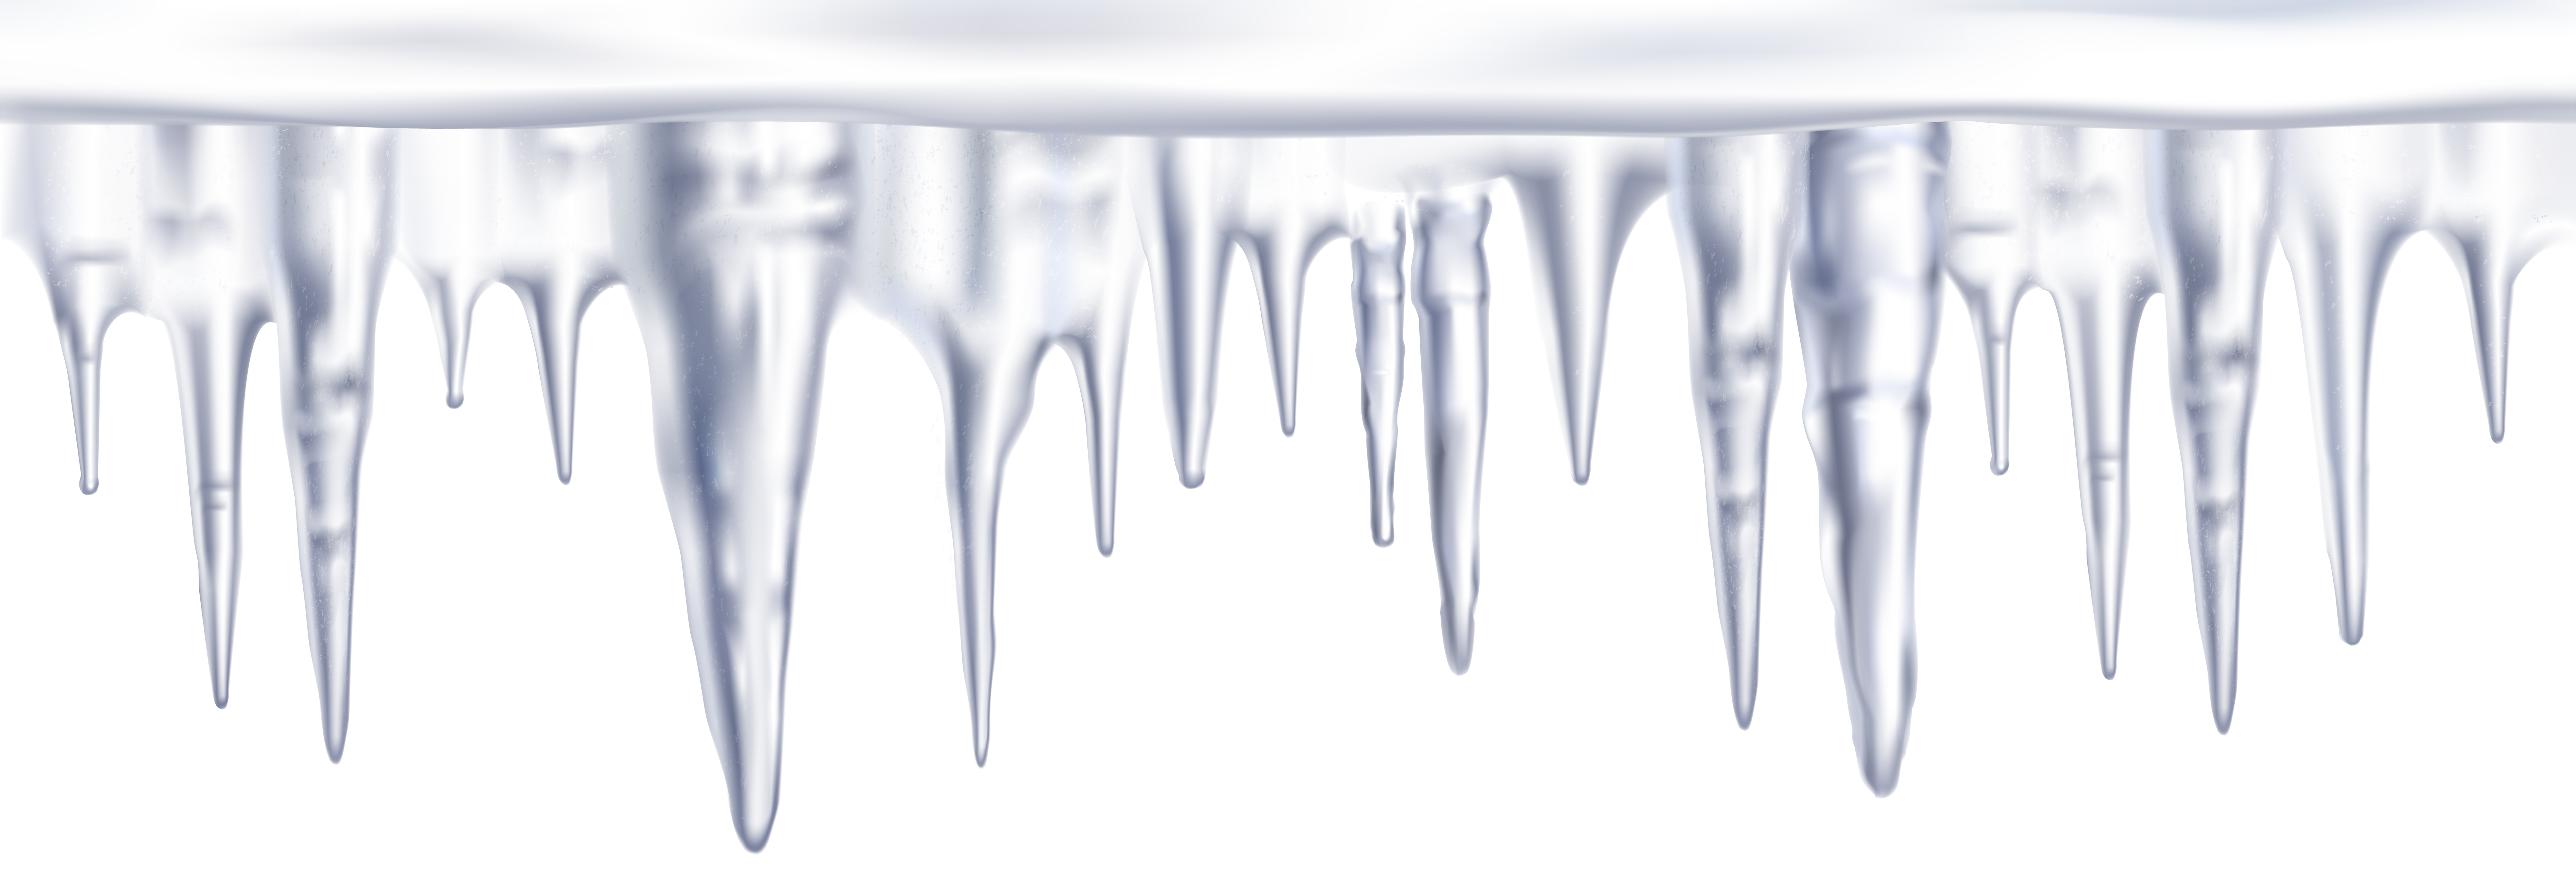 Clip art icicles transparent. Icicle clipart snow roof graphic black and white library